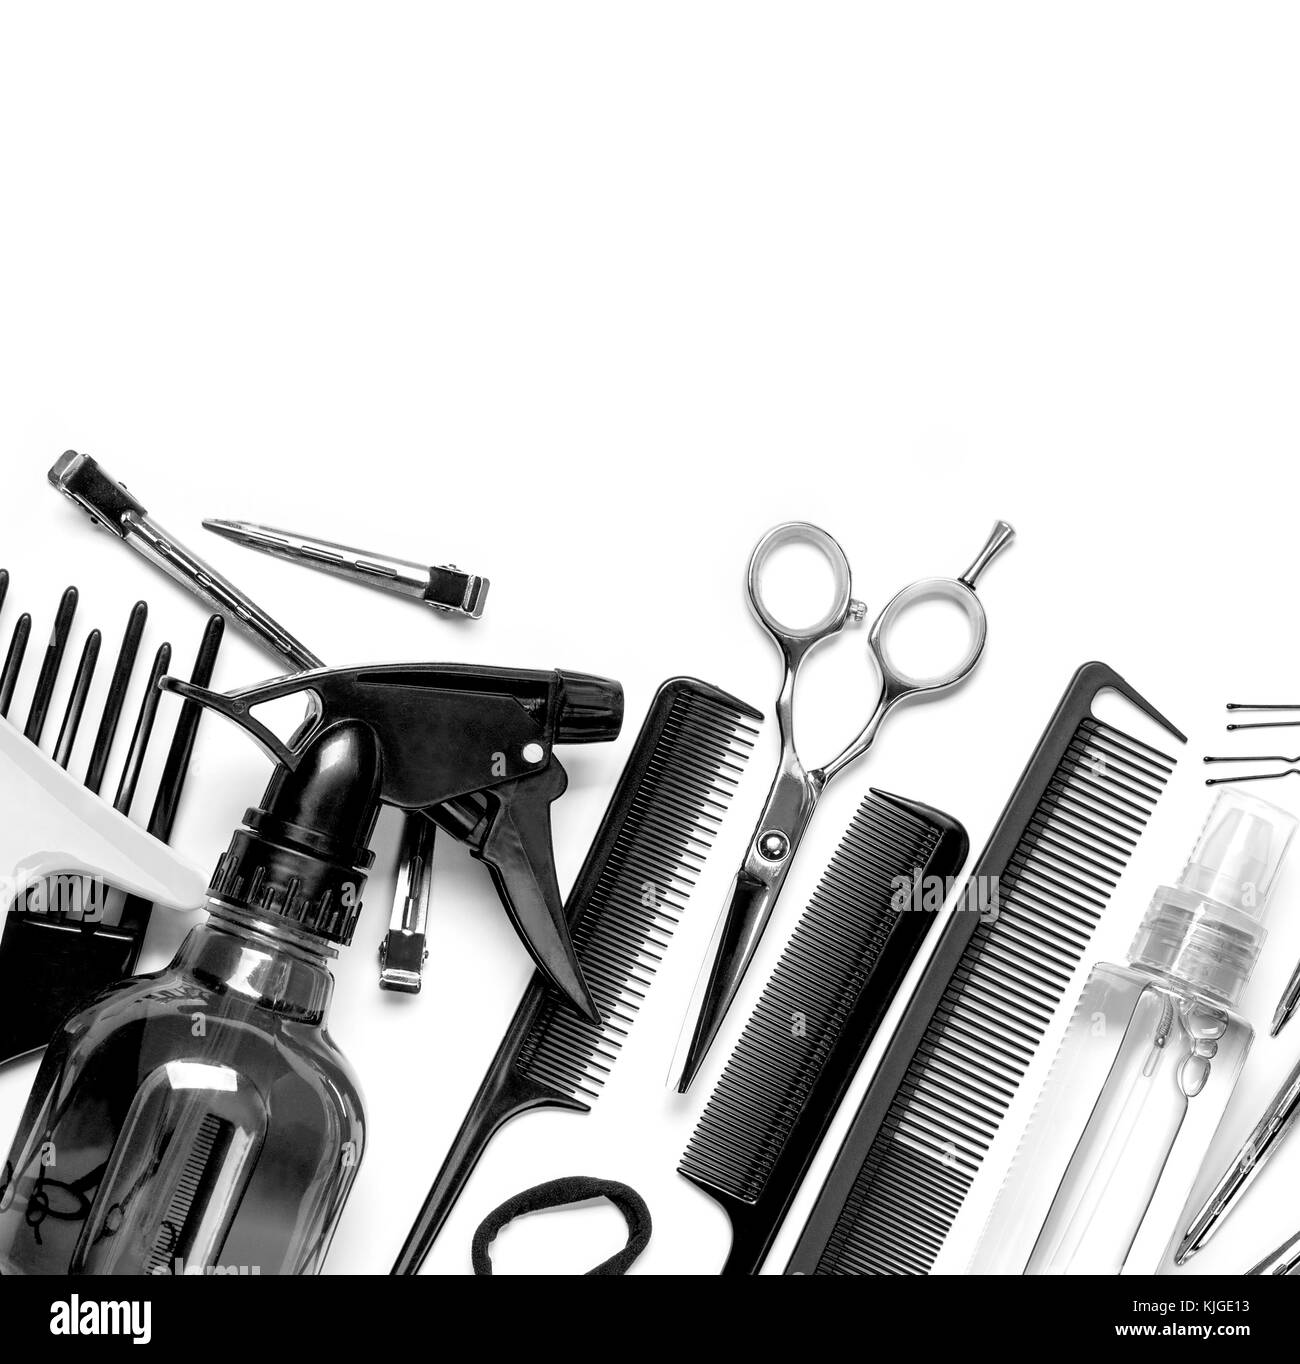 Professional hairdresser tools, isolated on white - Stock Image